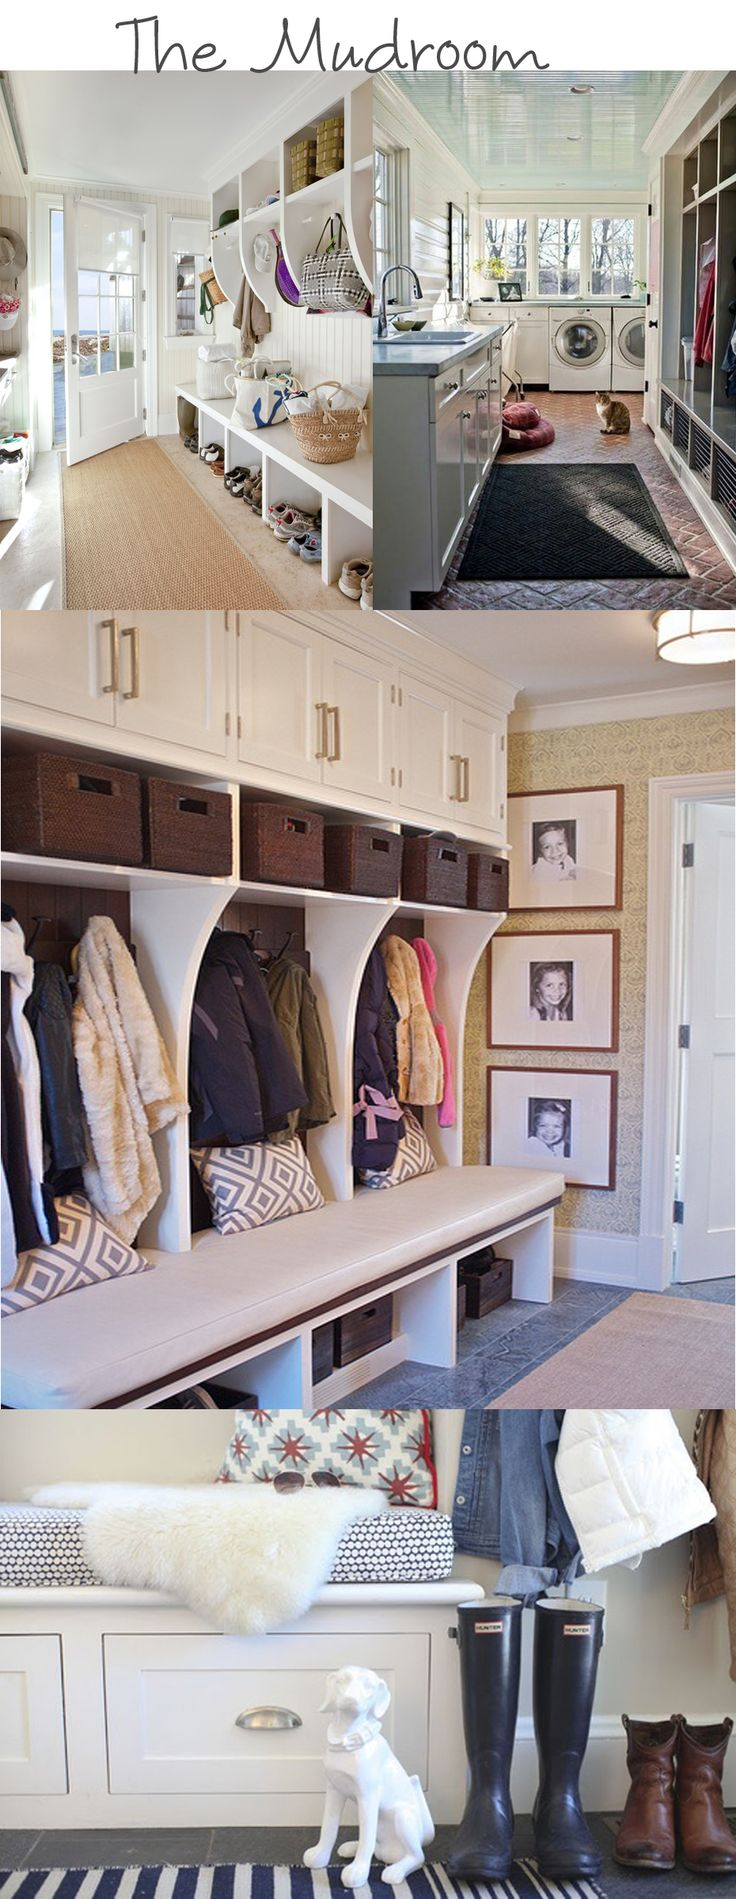 Expert tips for creating a functional, welcoming mud room!